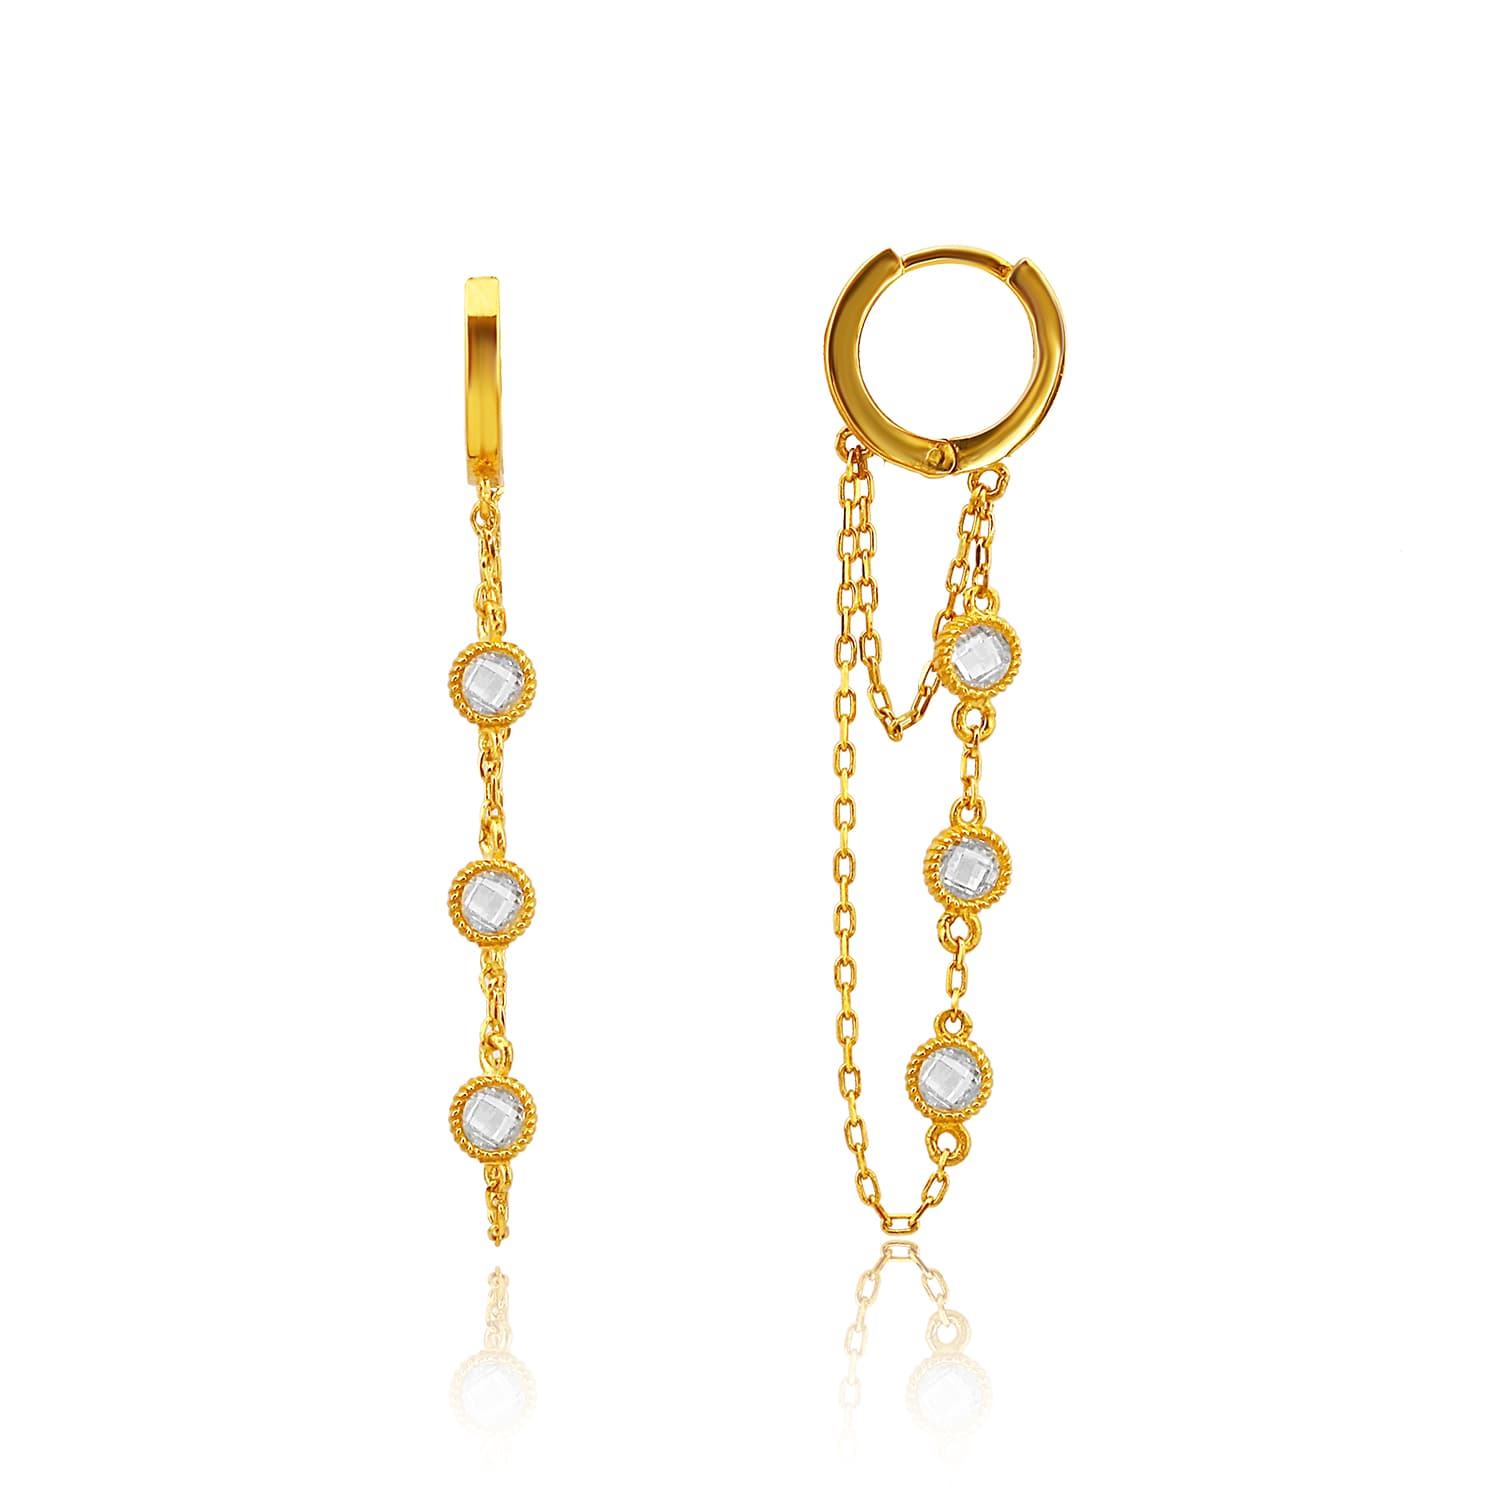 Gold plated hoop earrings models